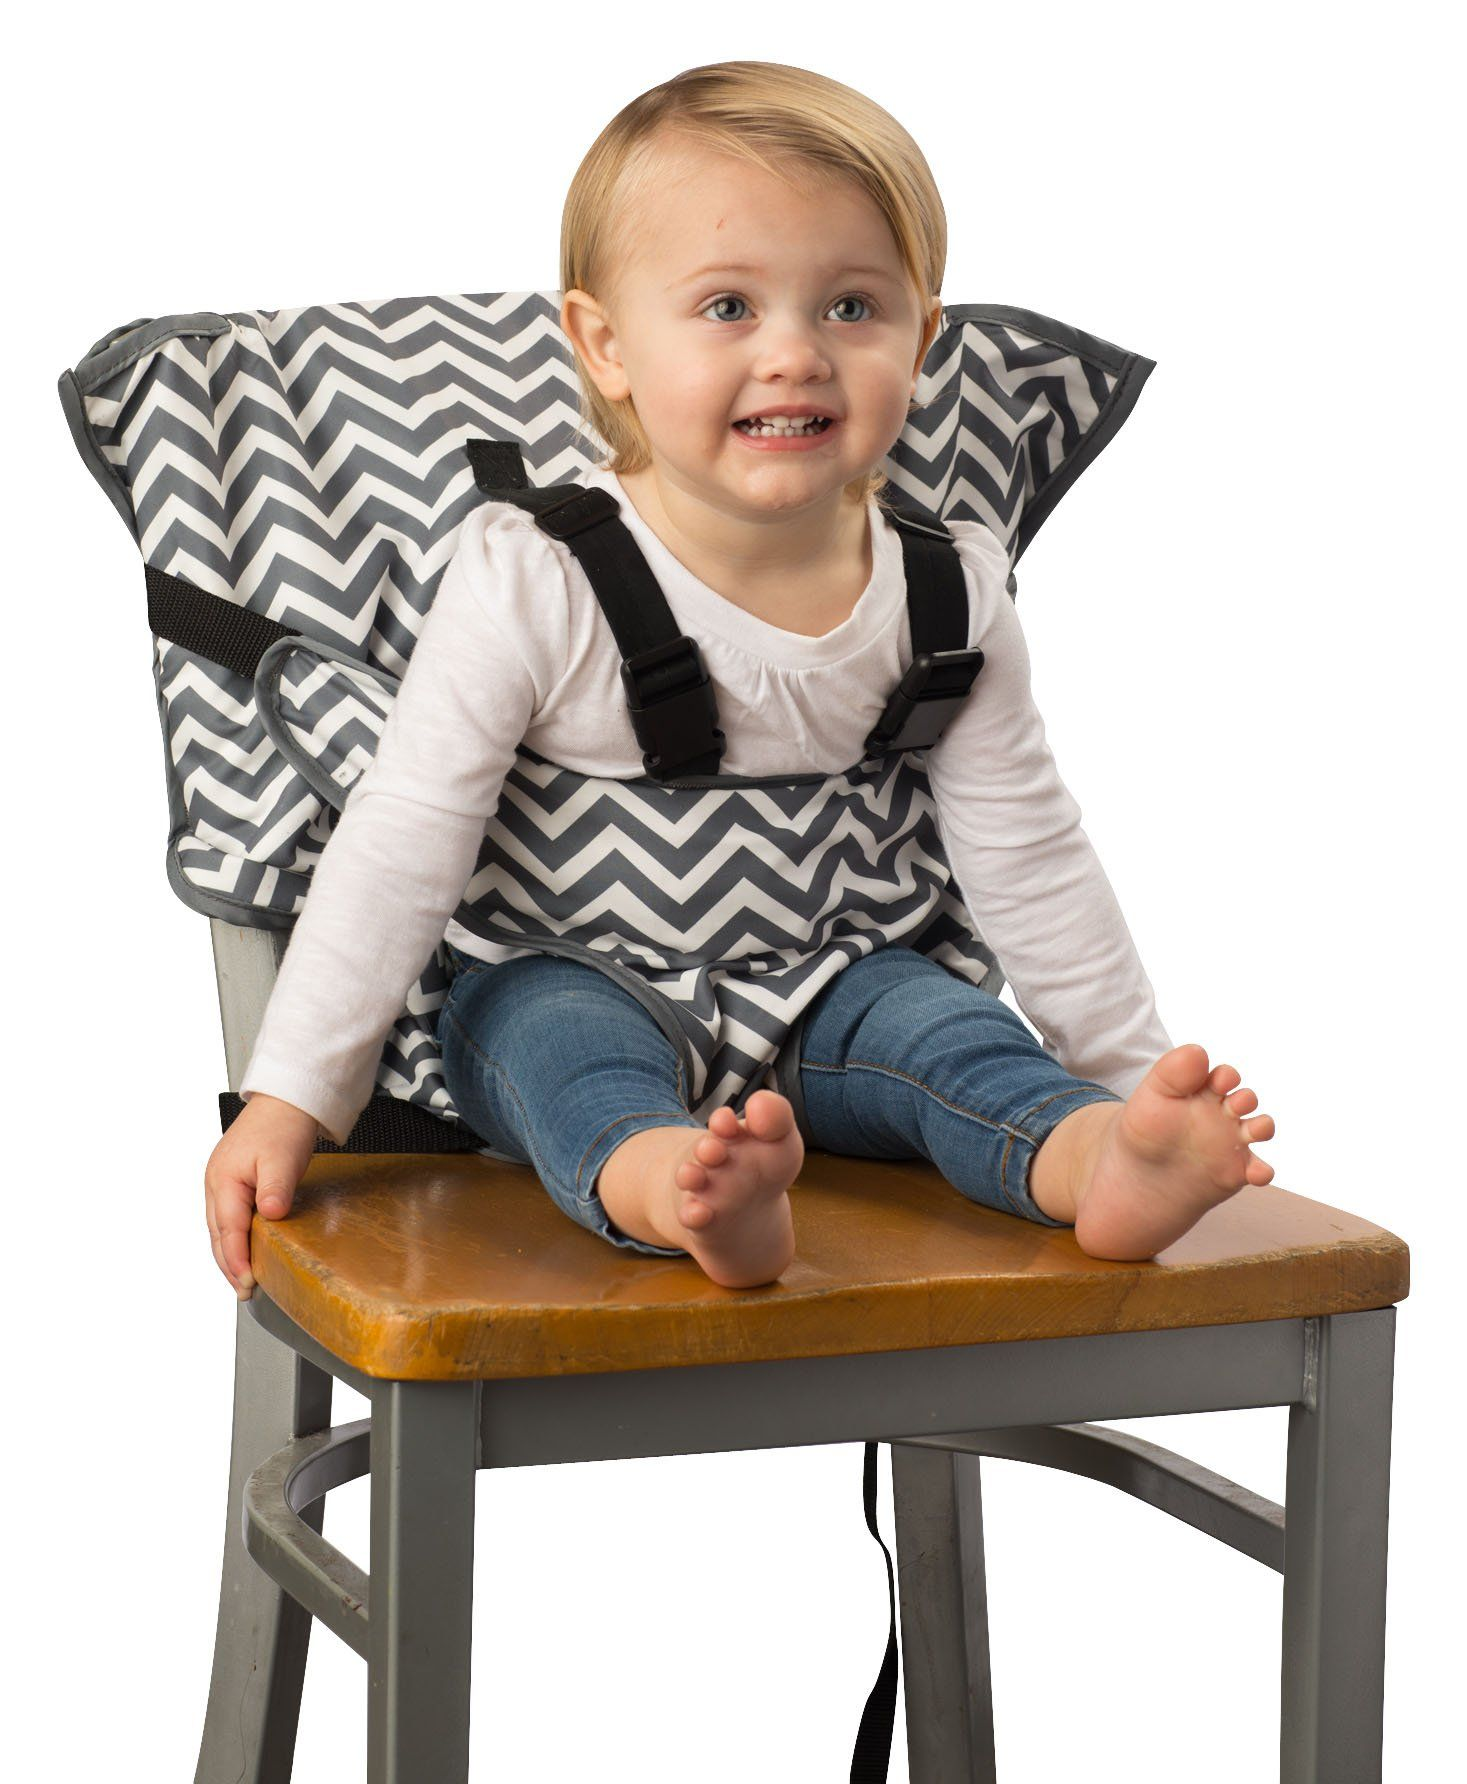 cd1f1a0cf8915 Cozy Cover Easy Seat – Portable Travel High Chair and Safety Seat for  Infants and Toddlers (Chevron). Simple and safe option for allowing your  child to sit ...